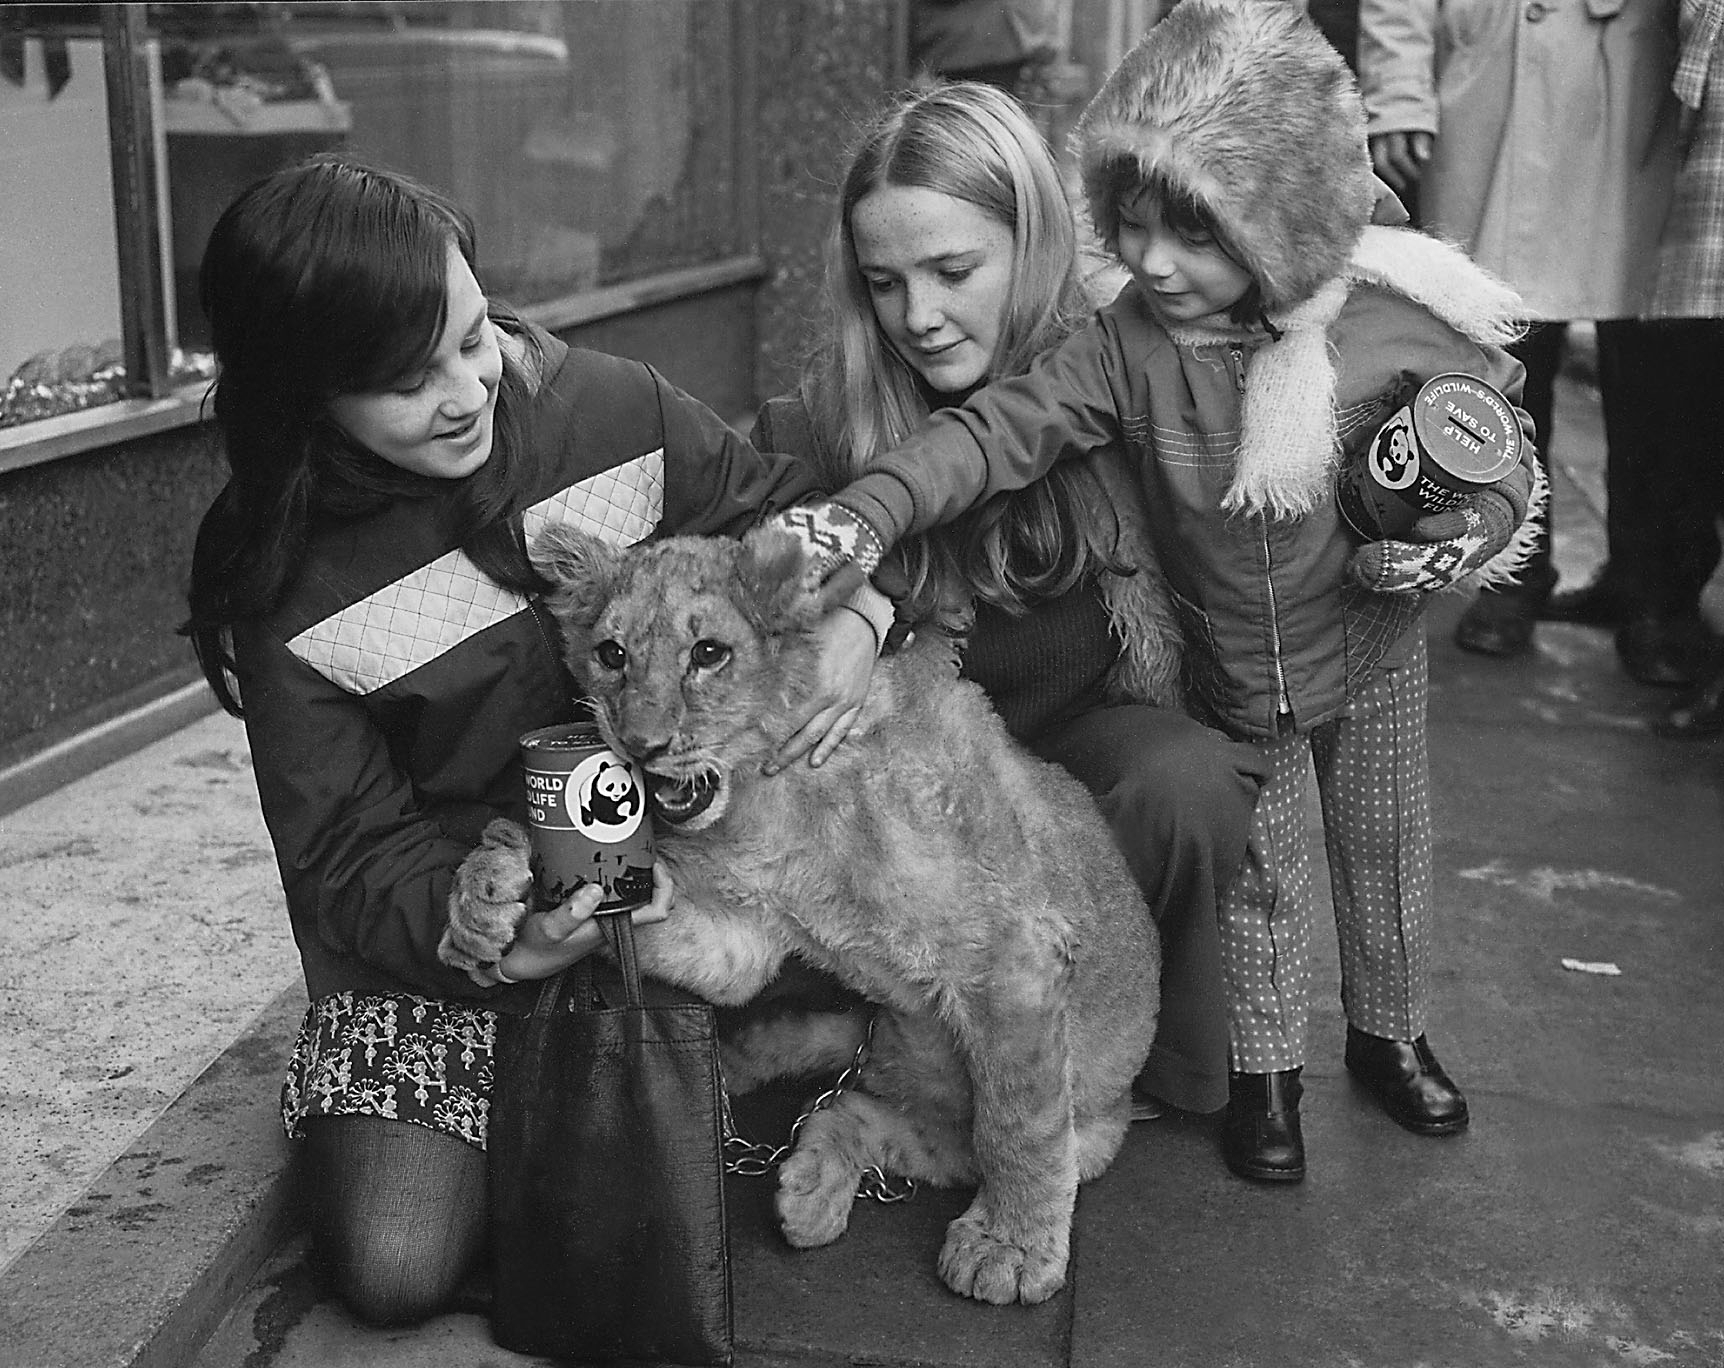 Youngsters with a lion cub who seems to be helping to raise money.